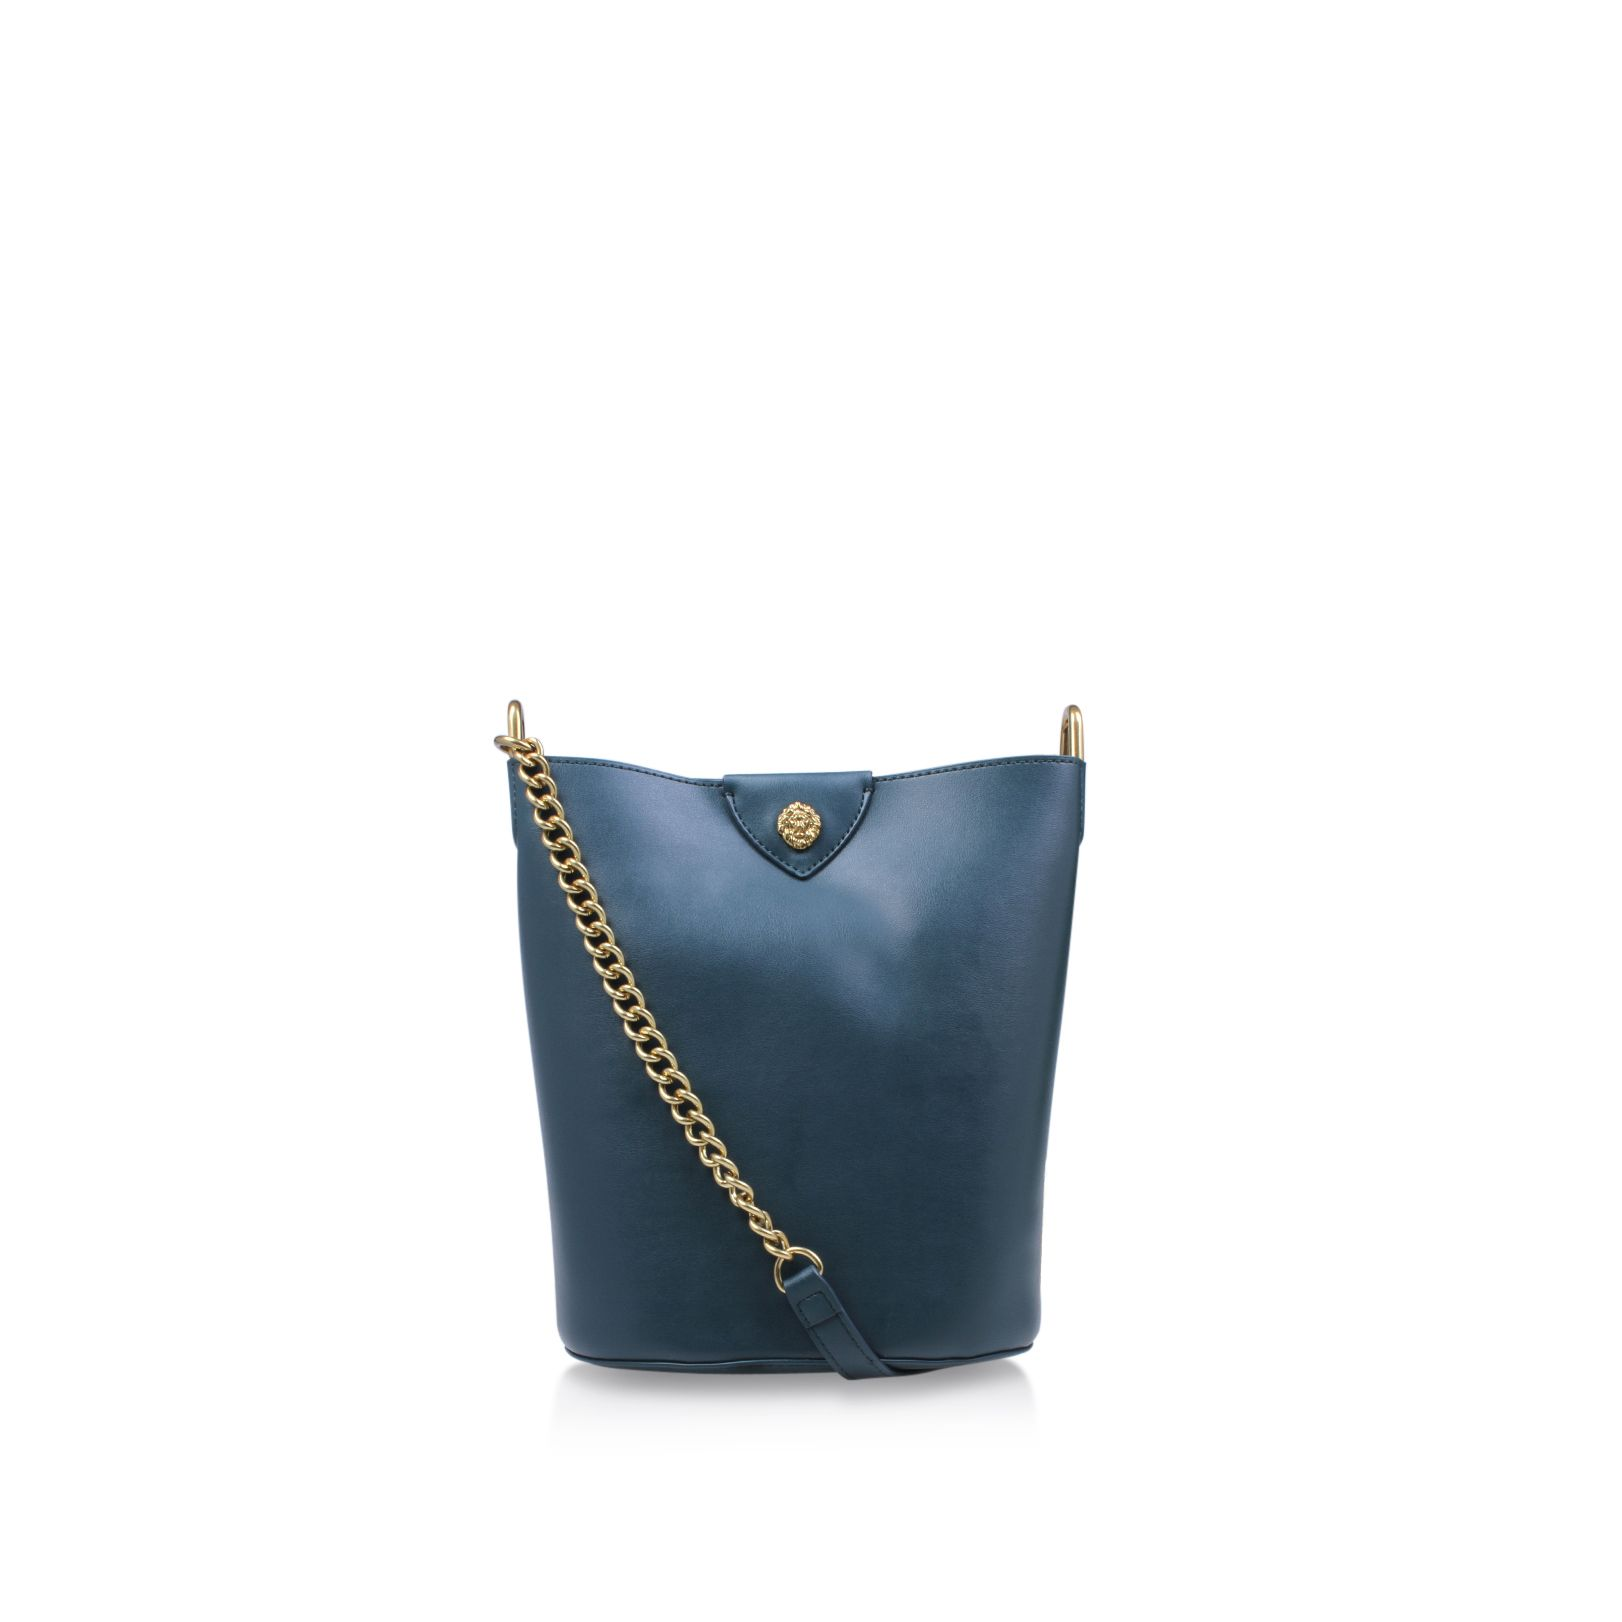 Anne Klein Mila Chain Bucket Bag, Dark Green